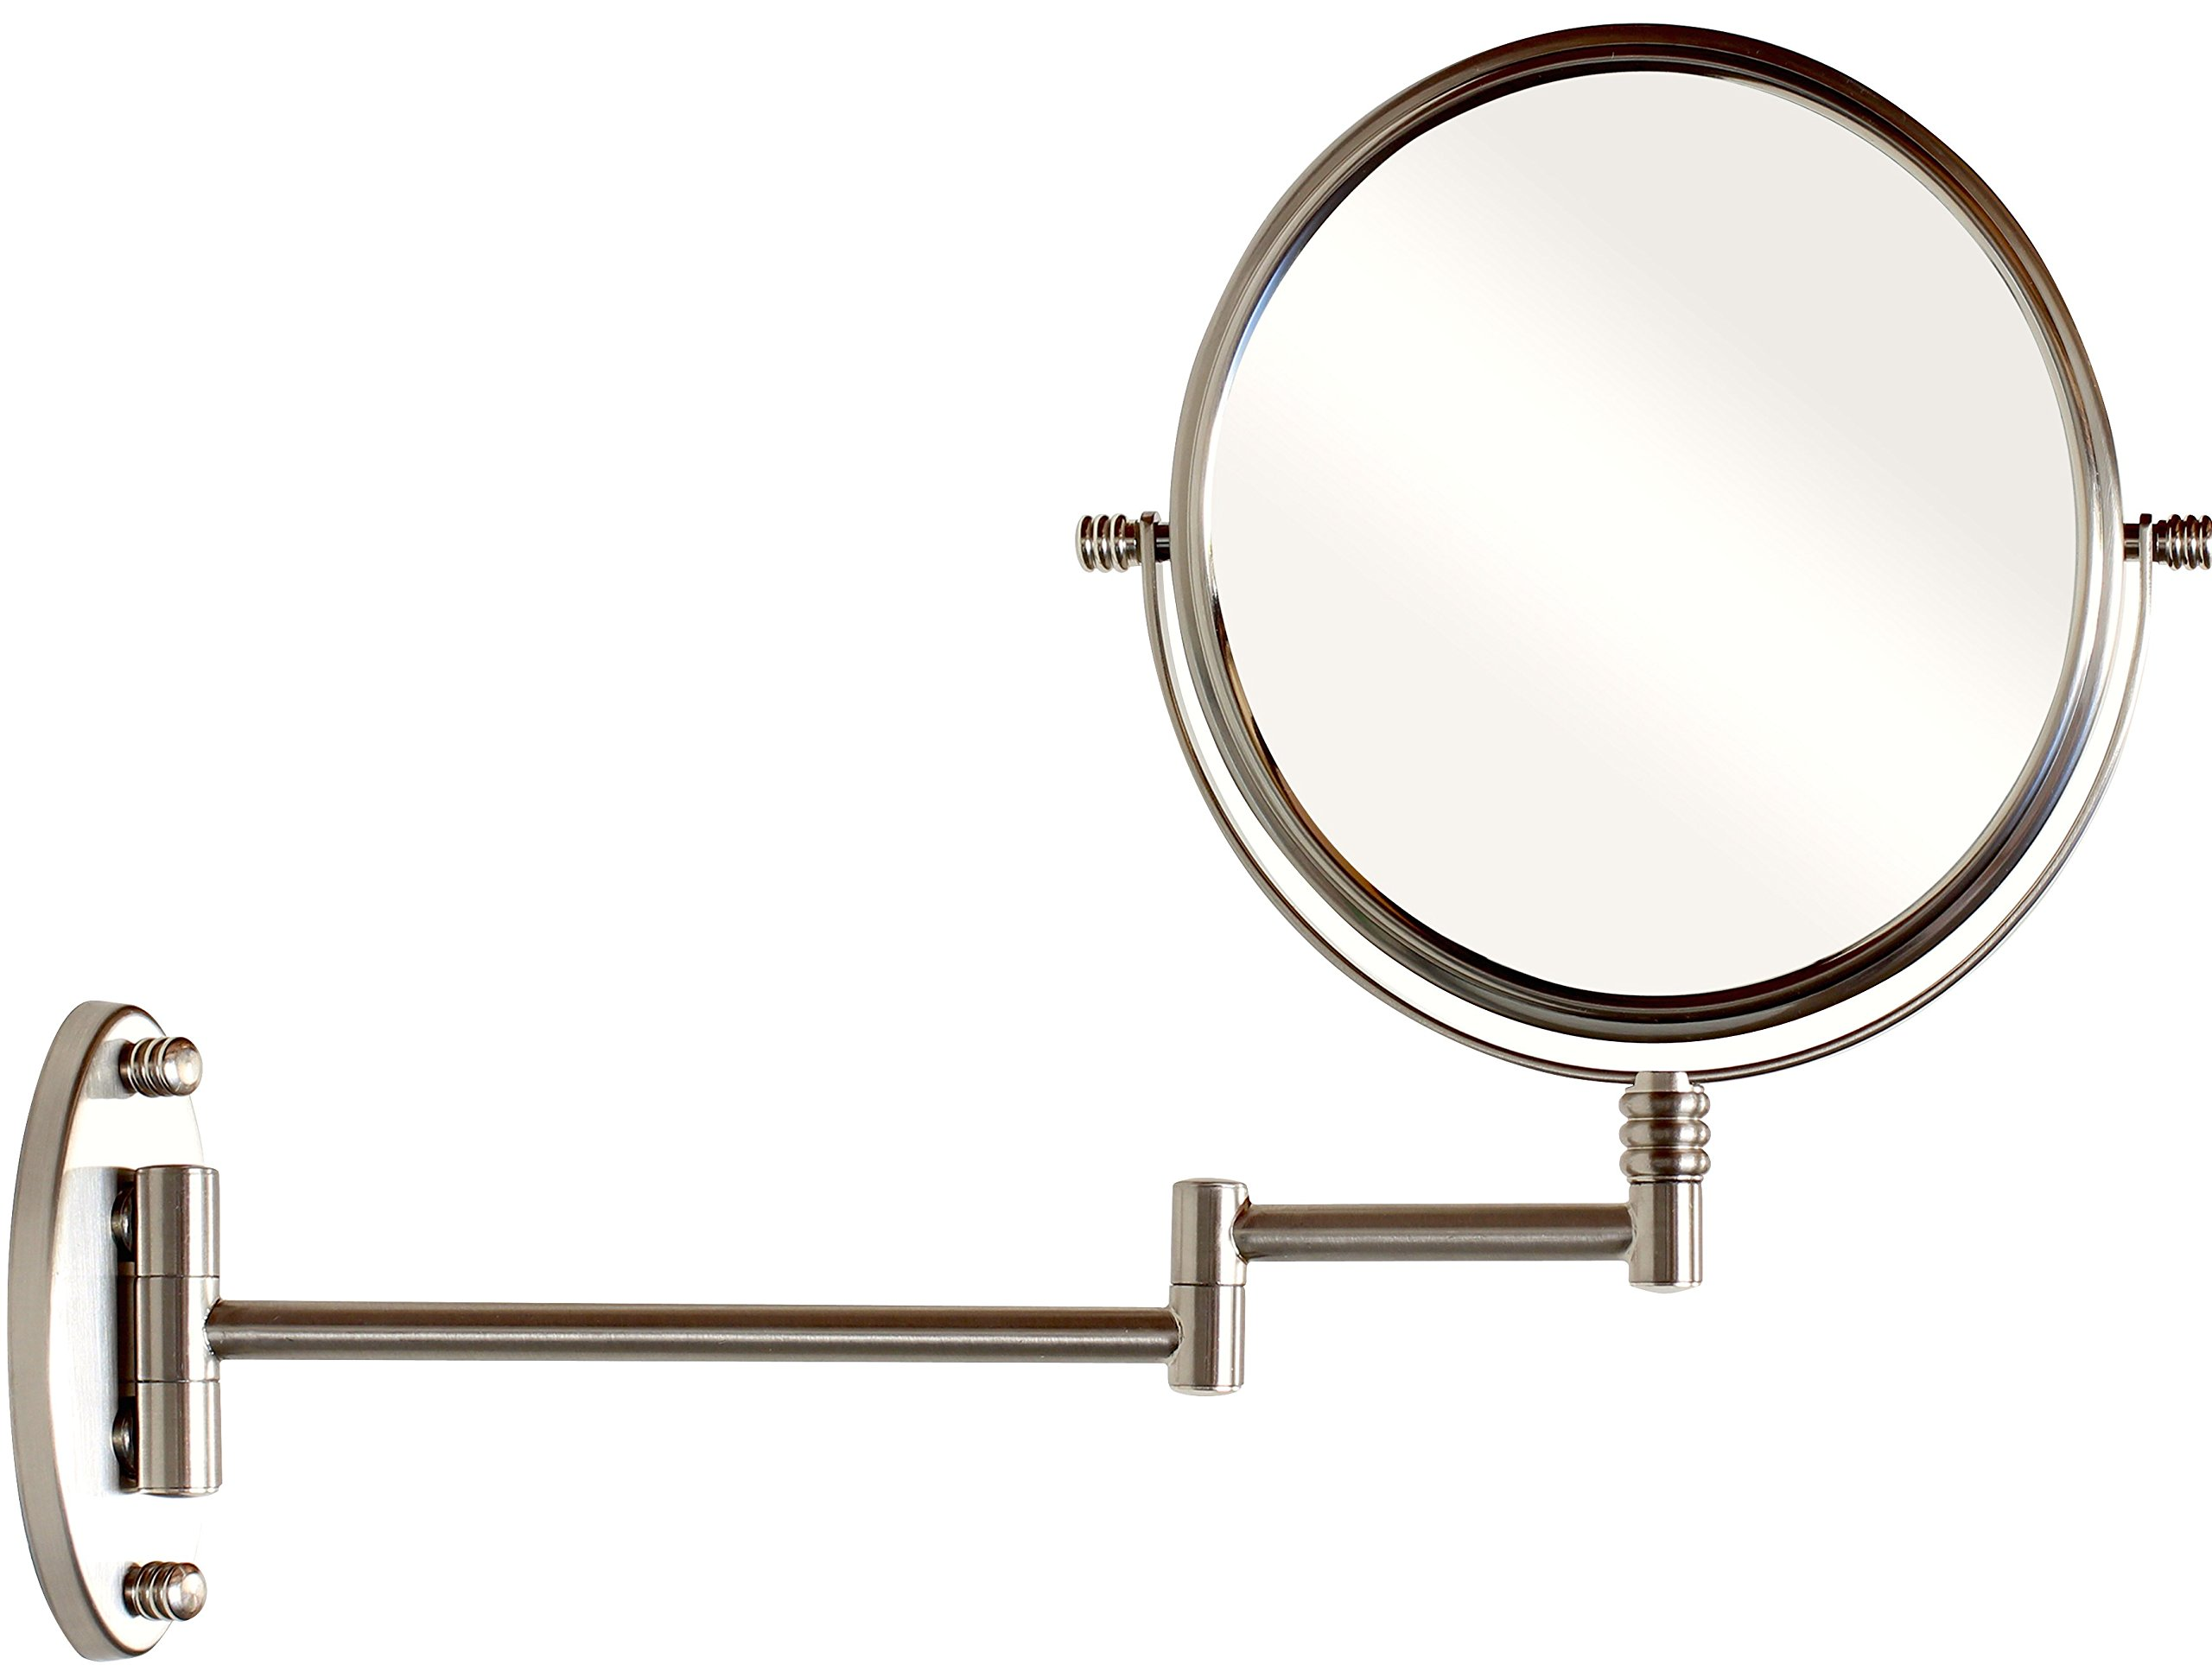 DecoBros 9.8-Inch Two-Sided Swivel Wall Mount Mirror with 7x Magnification, 13.5-Inch Extension, Nickel by DECOBROS